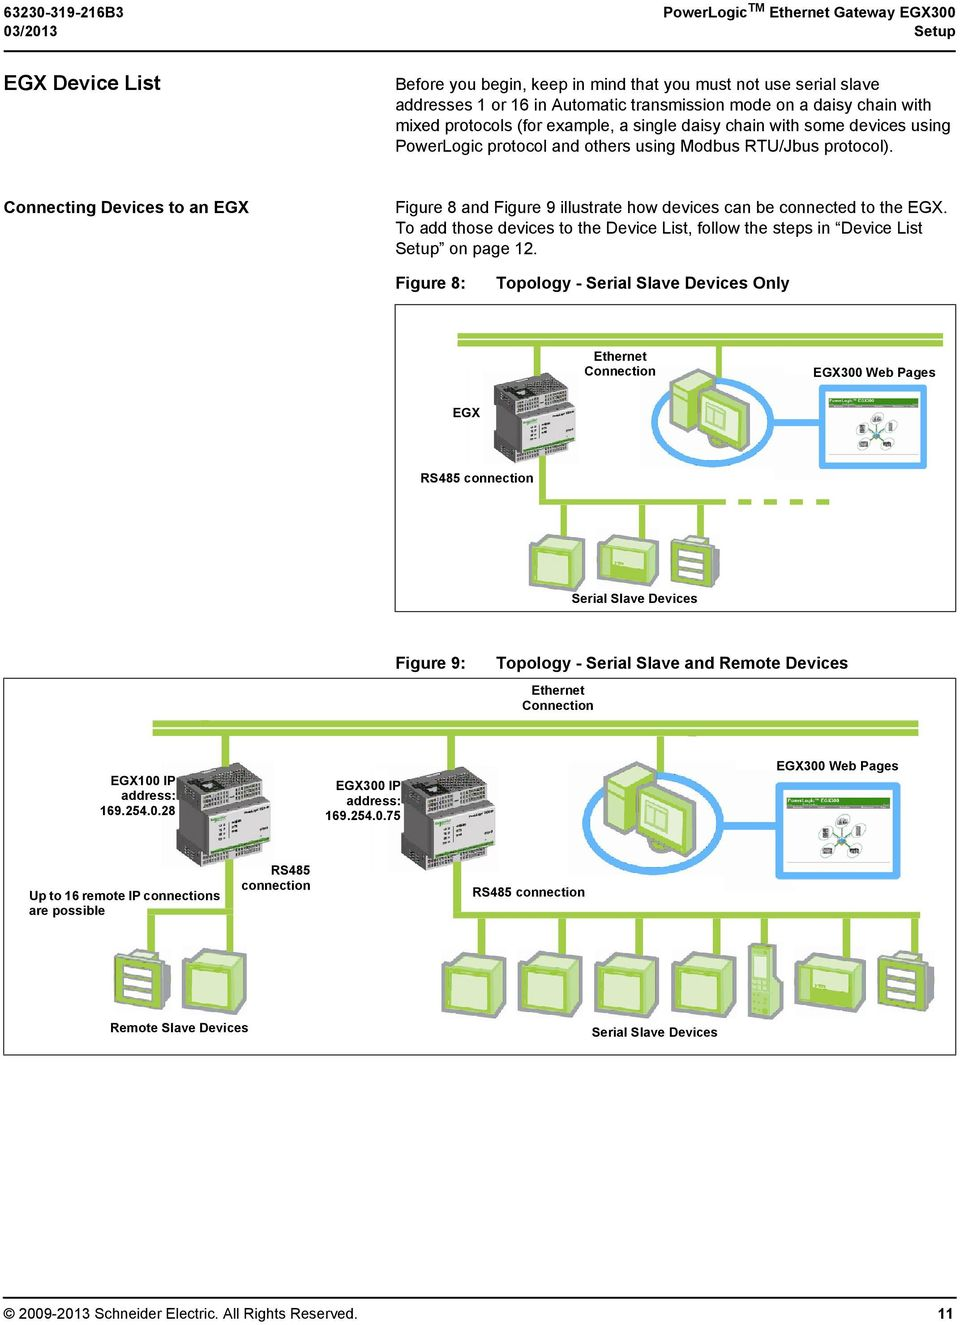 Connecting Devices to an EGX Figure 8 and Figure 9 illustrate how devices can be connected to the EGX. To add those devices to the Device List, follow the steps in Device List Setup on page 12.